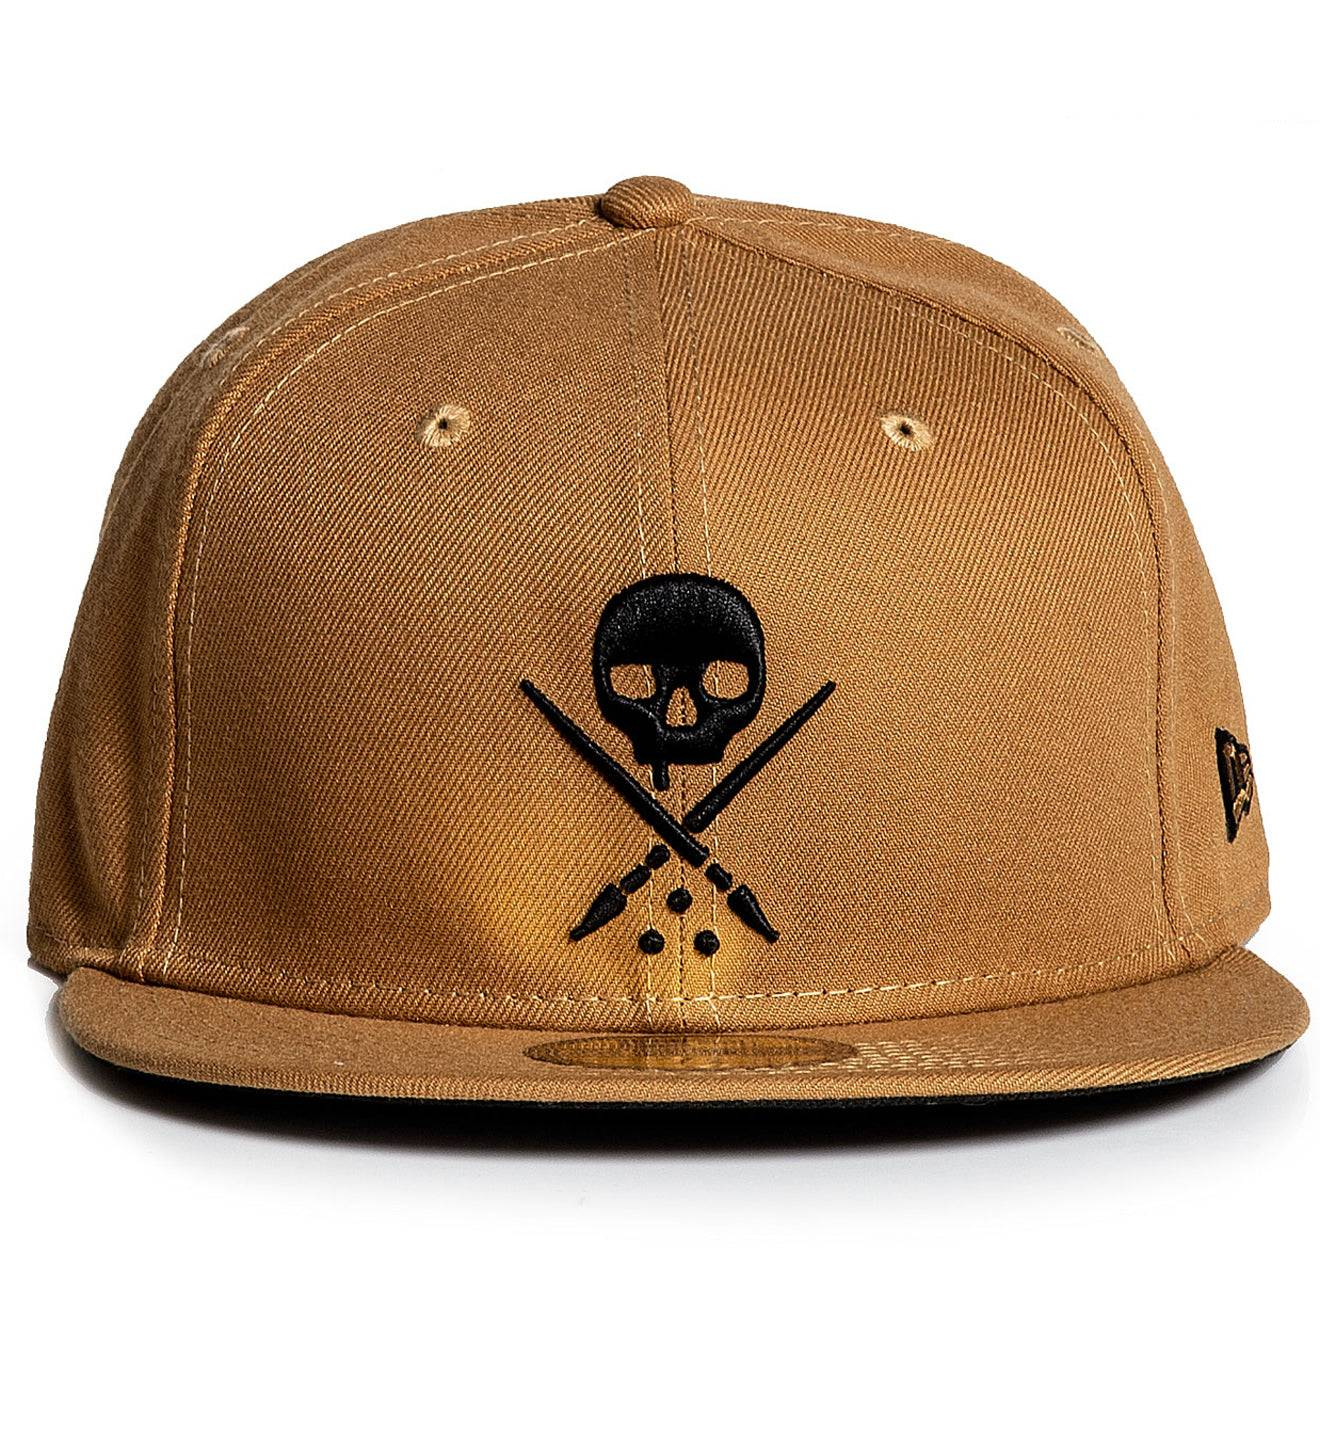 Mens Fitted Badge Wheat, WHEAT / 75/8